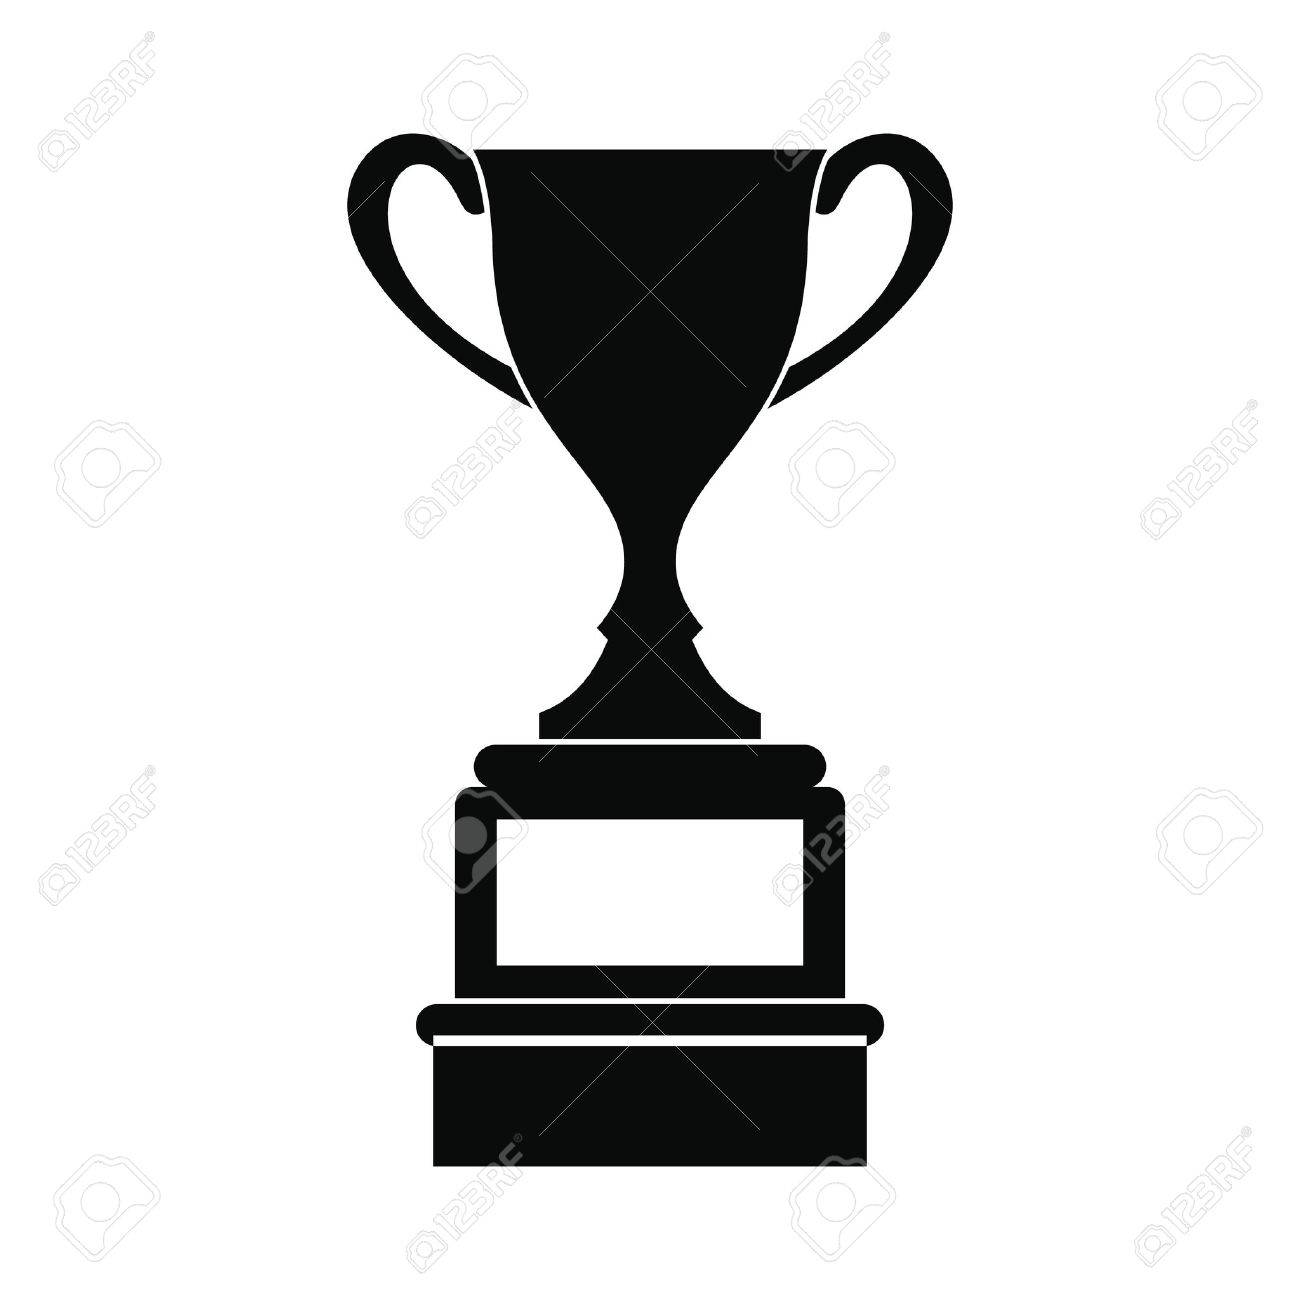 Sports cup black simple icon isolated on white background Banque d'images - 51646734